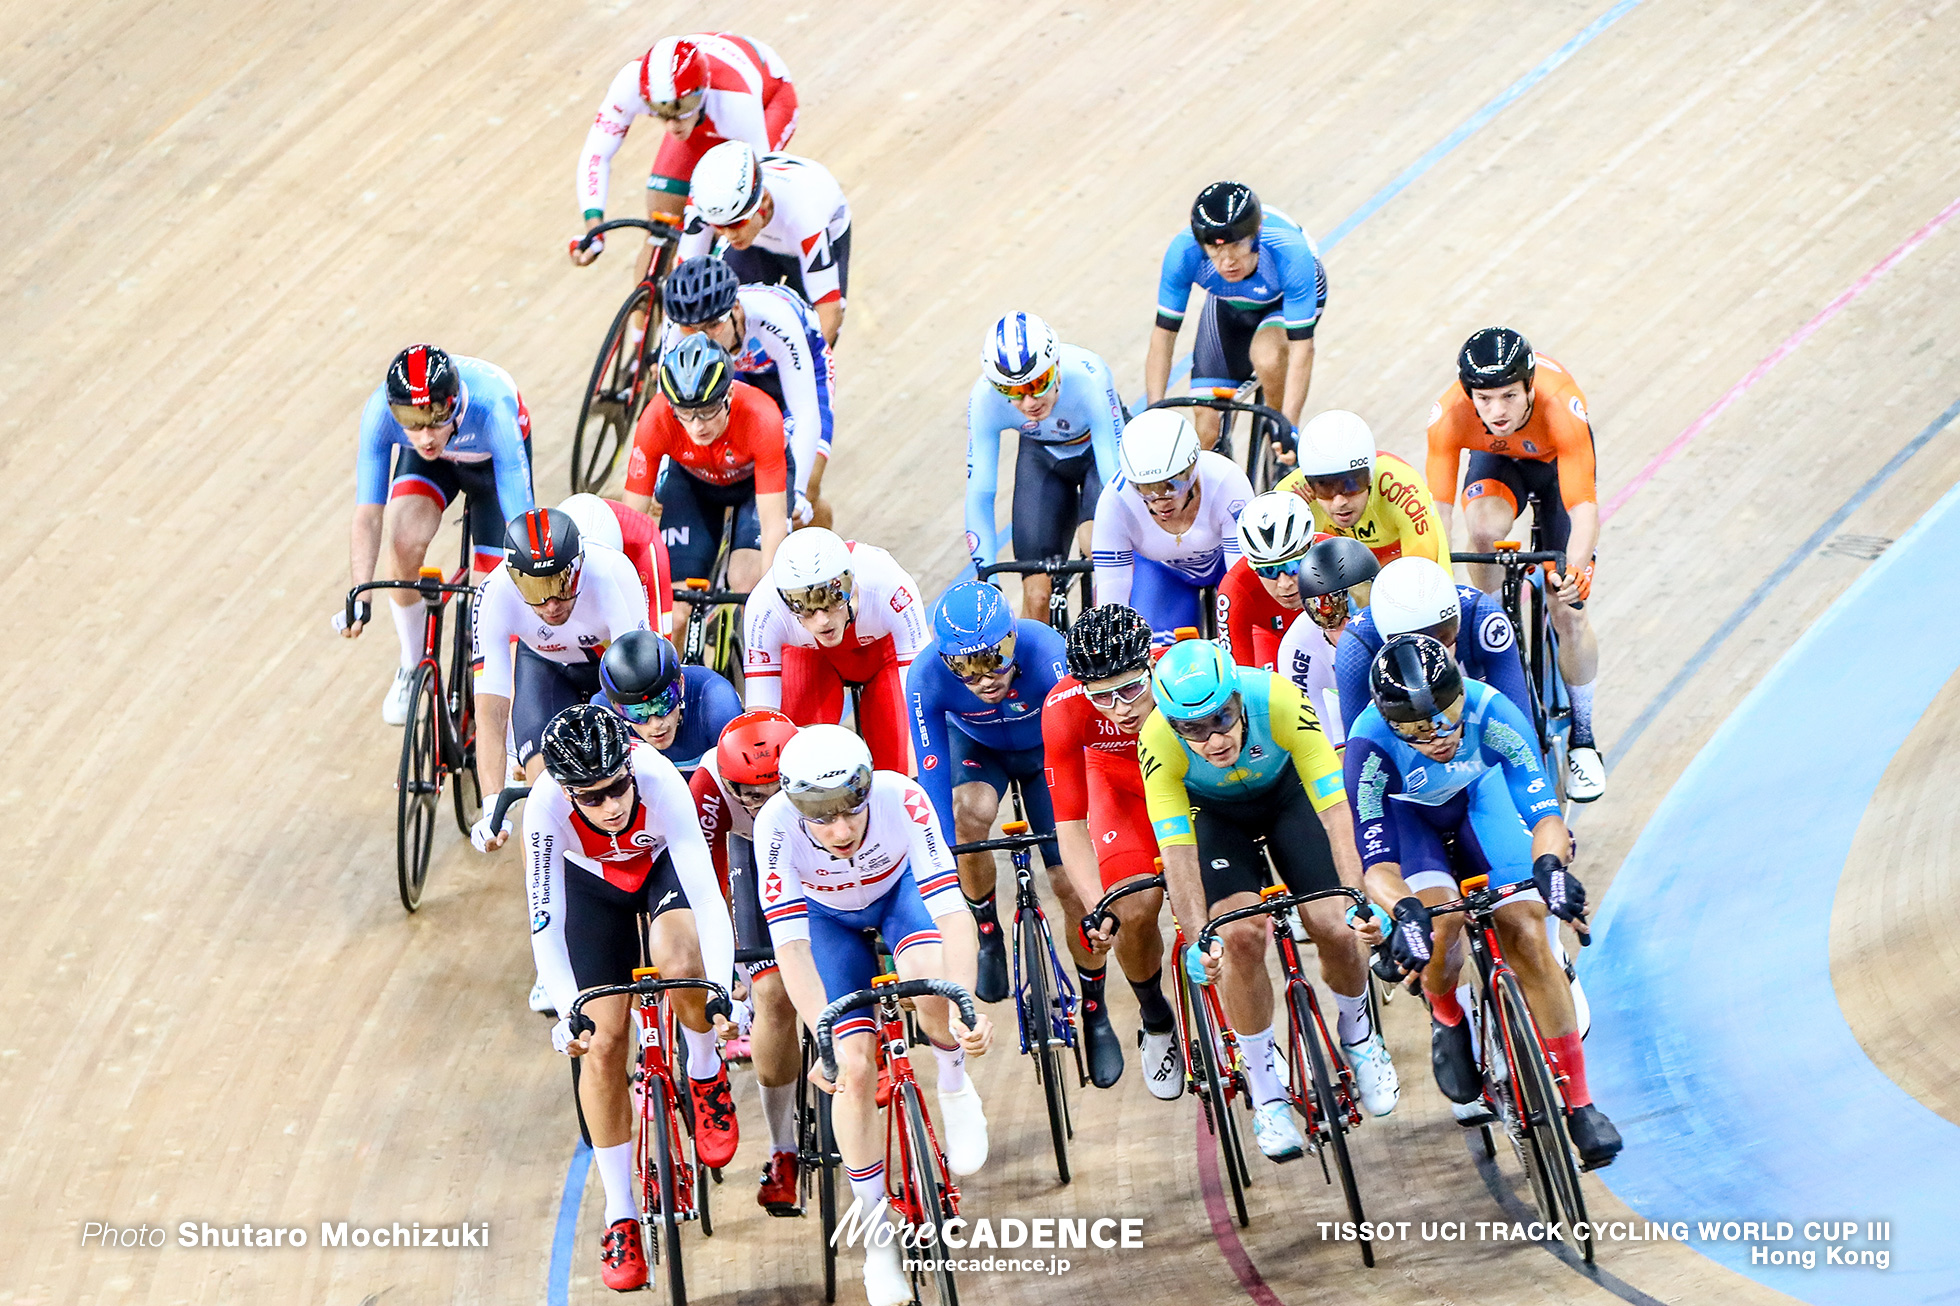 Elimination / Men's Omnium / TISSOT UCI TRACK CYCLING WORLD CUP III, Hong Kong